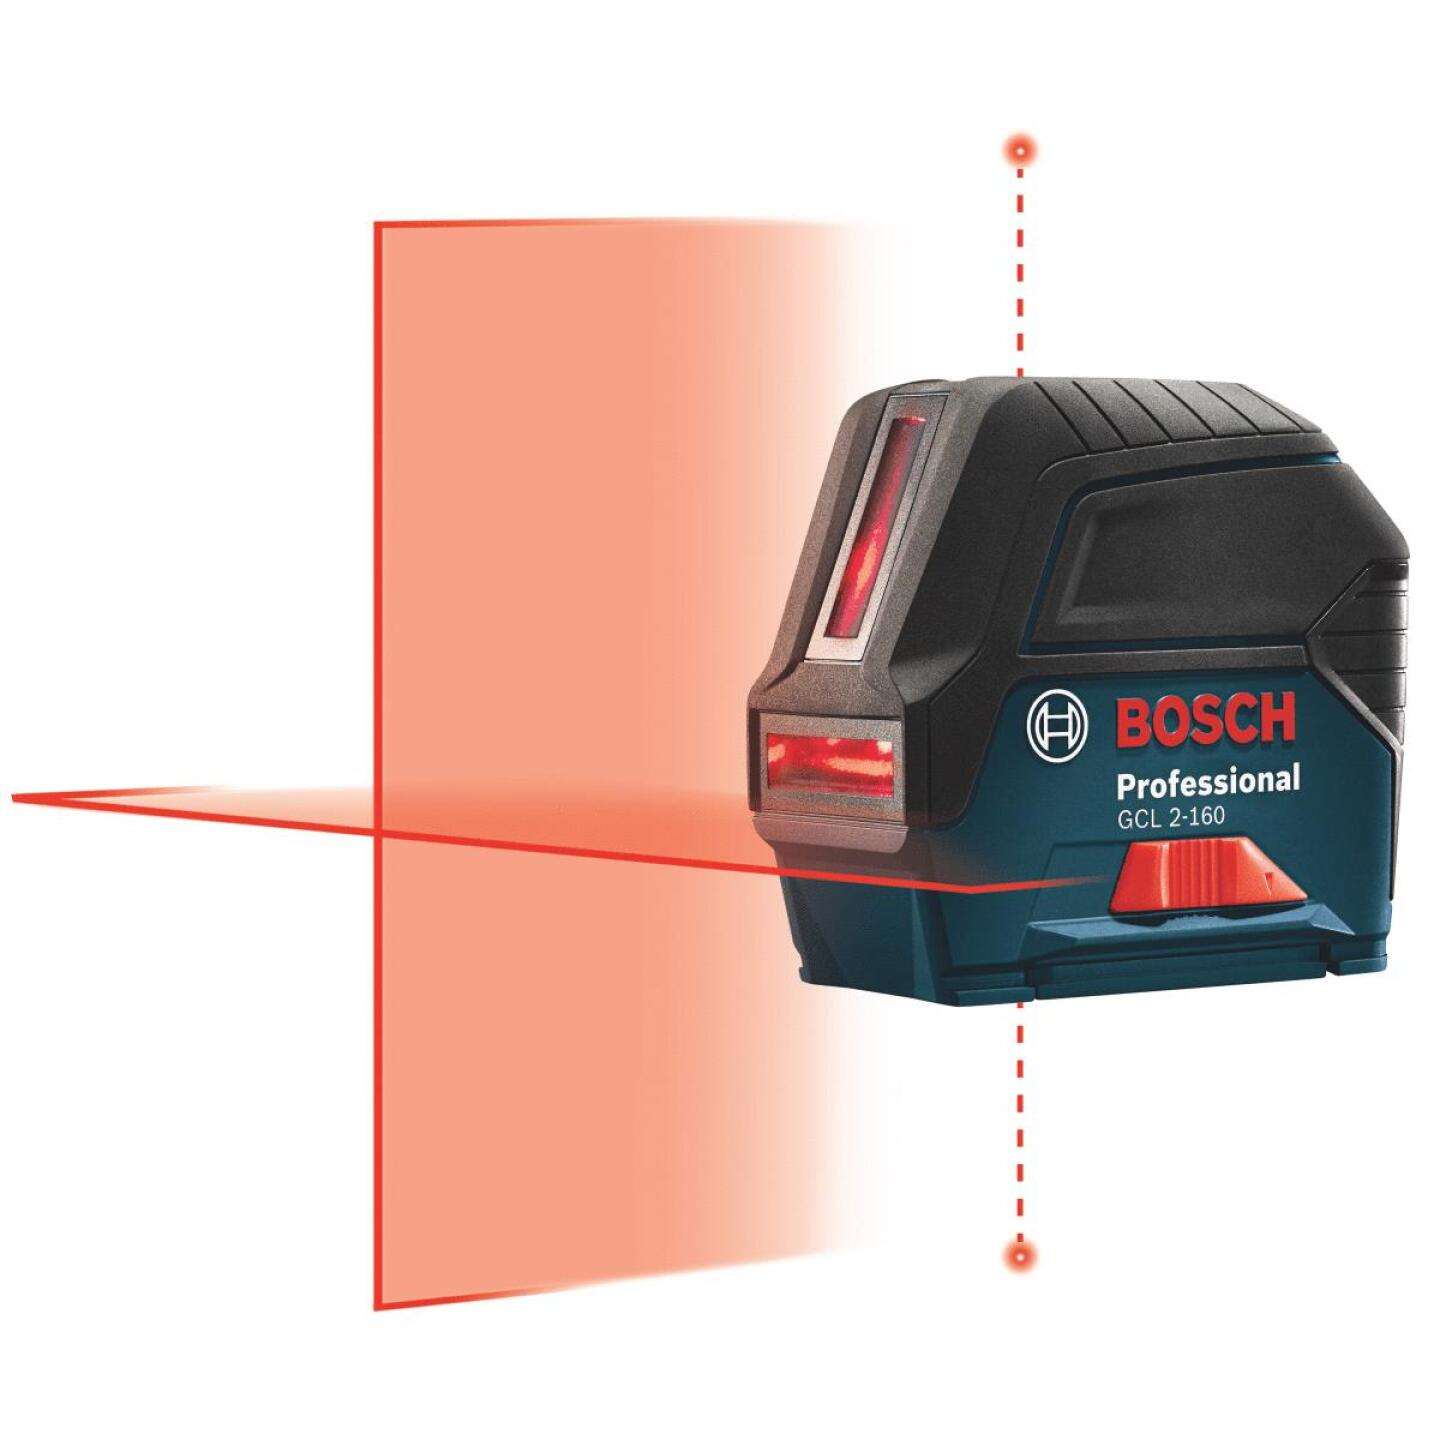 Bosch 165 Ft. Self-Leveling Cross-Line Laser Level with Plumb Points Image 1